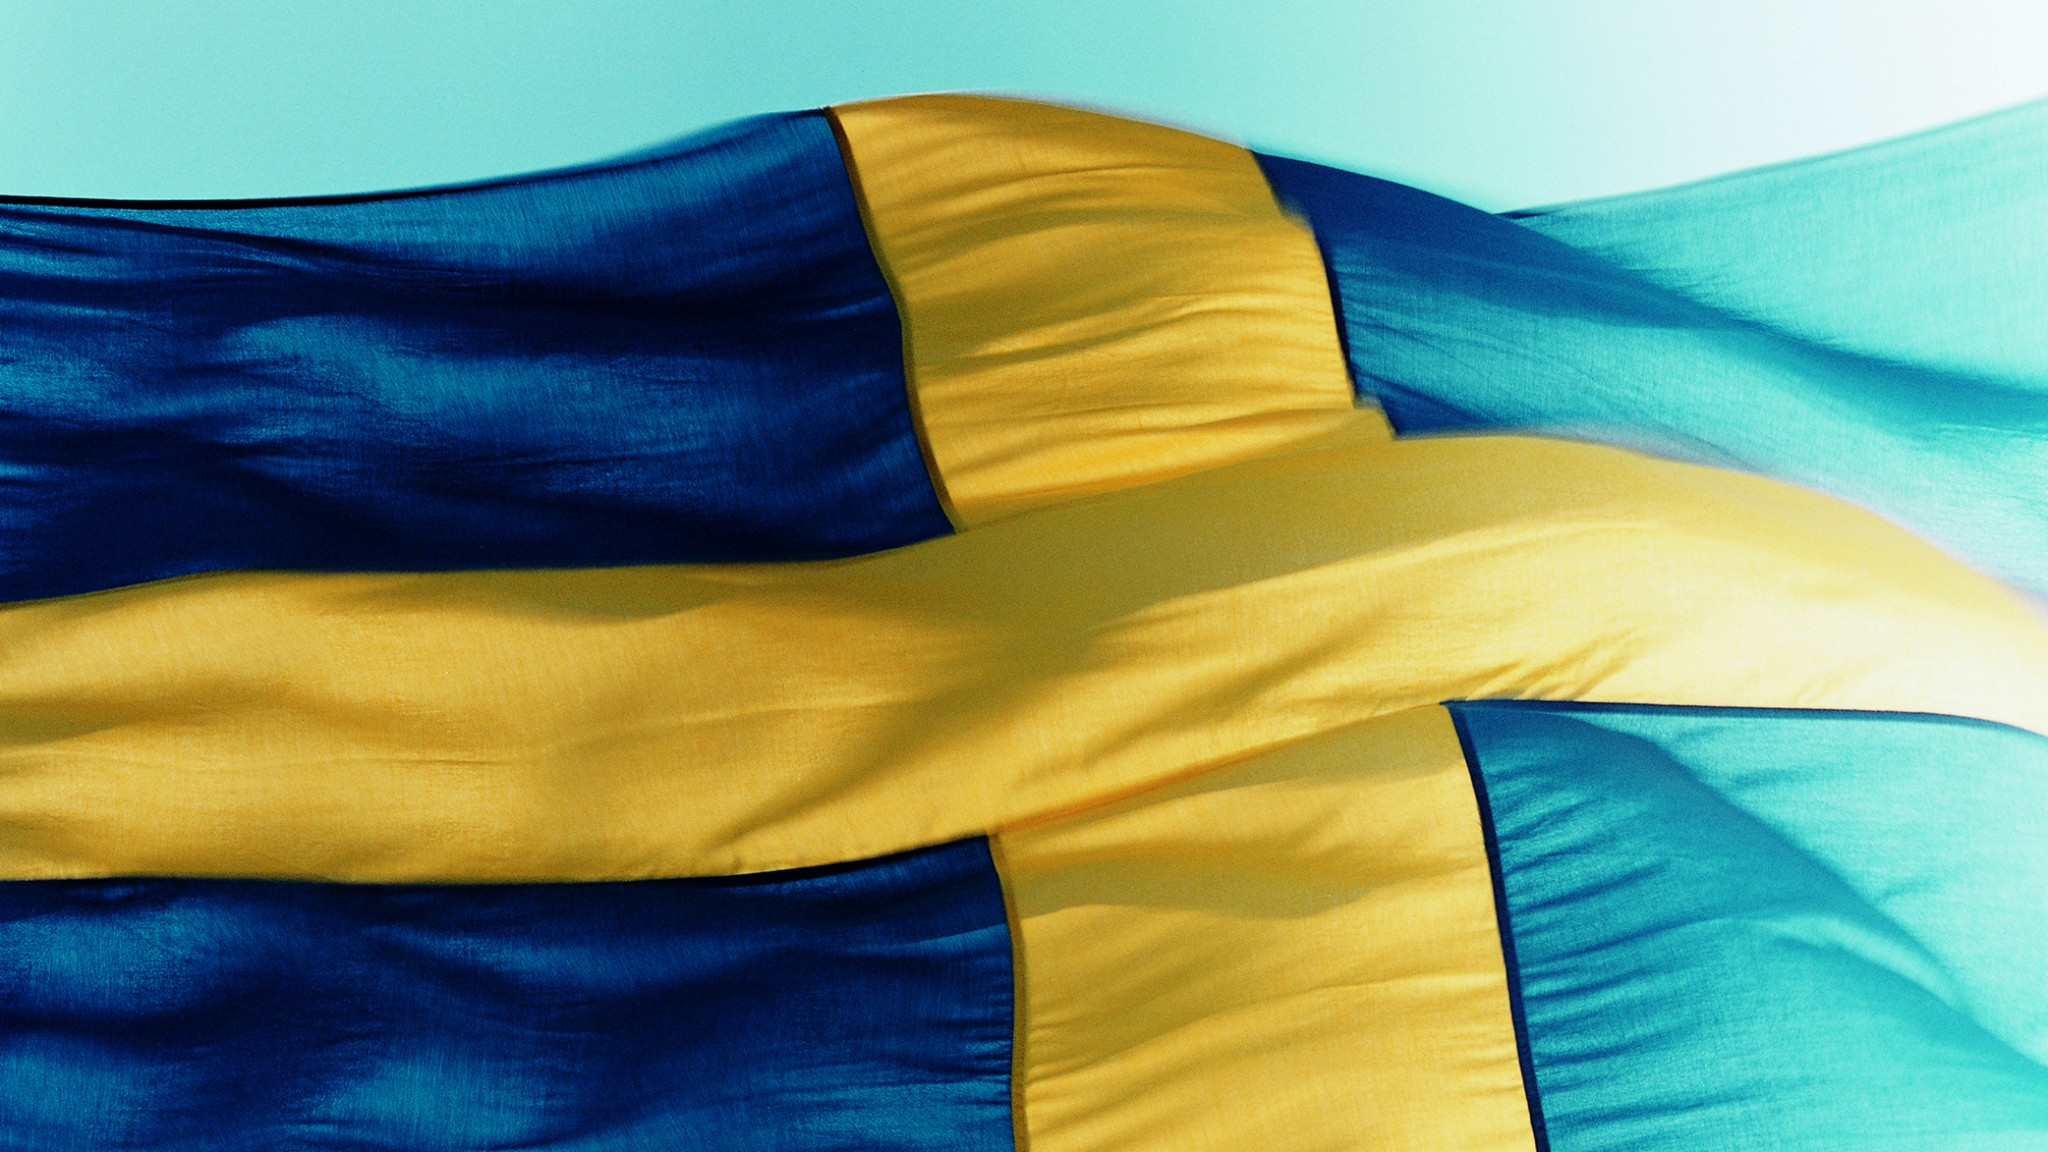 Swedish flag. Image.